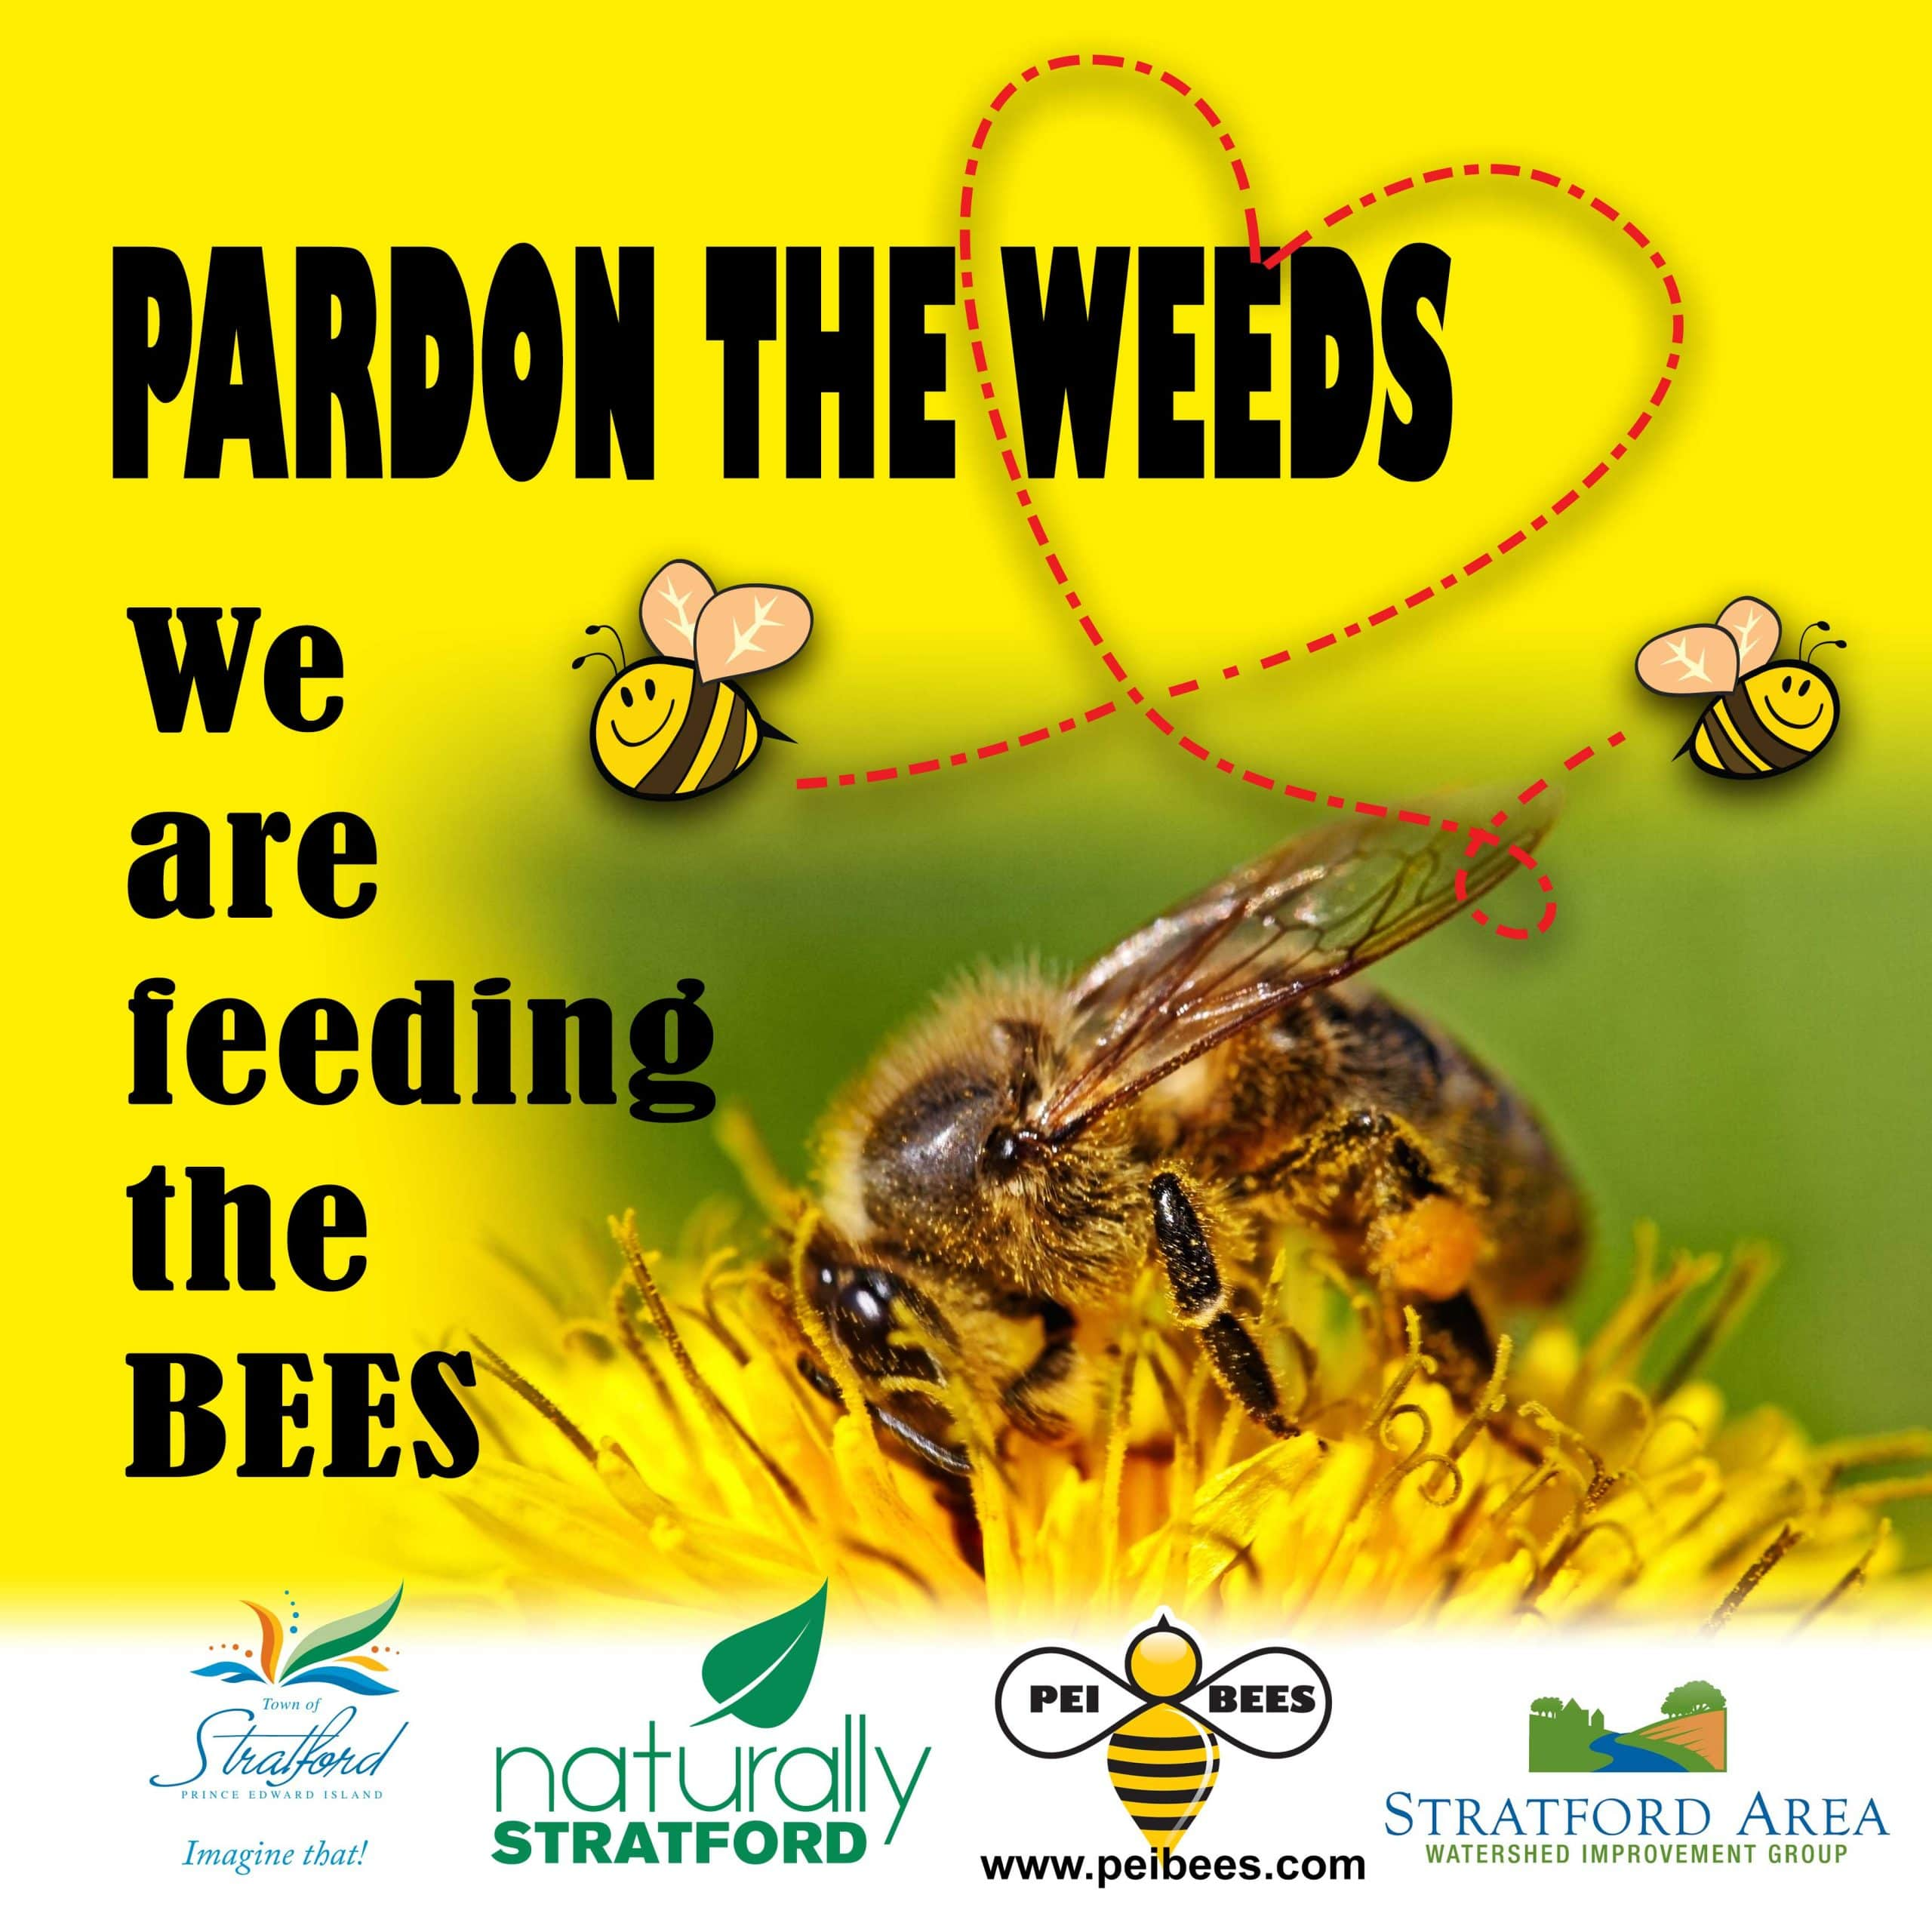 Pardon the Weeds we are feeding the bees - poster